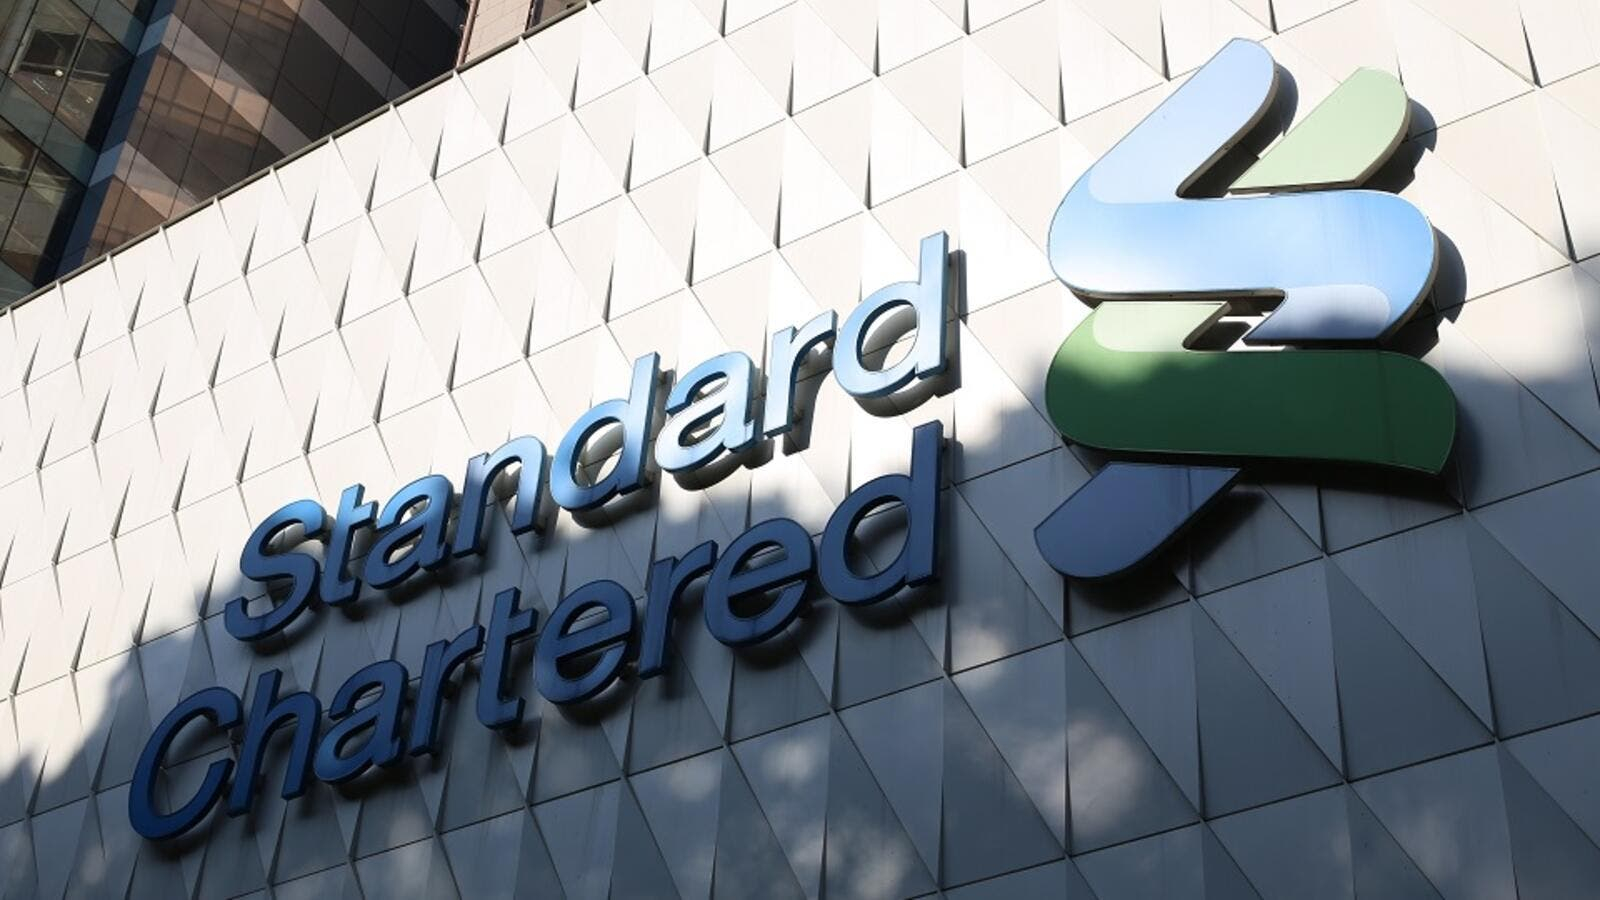 Stanchart, as the bank is popularly known, started talks with regulators in the Kingdom to obtain a banking license in 2017. (Shutterstock)